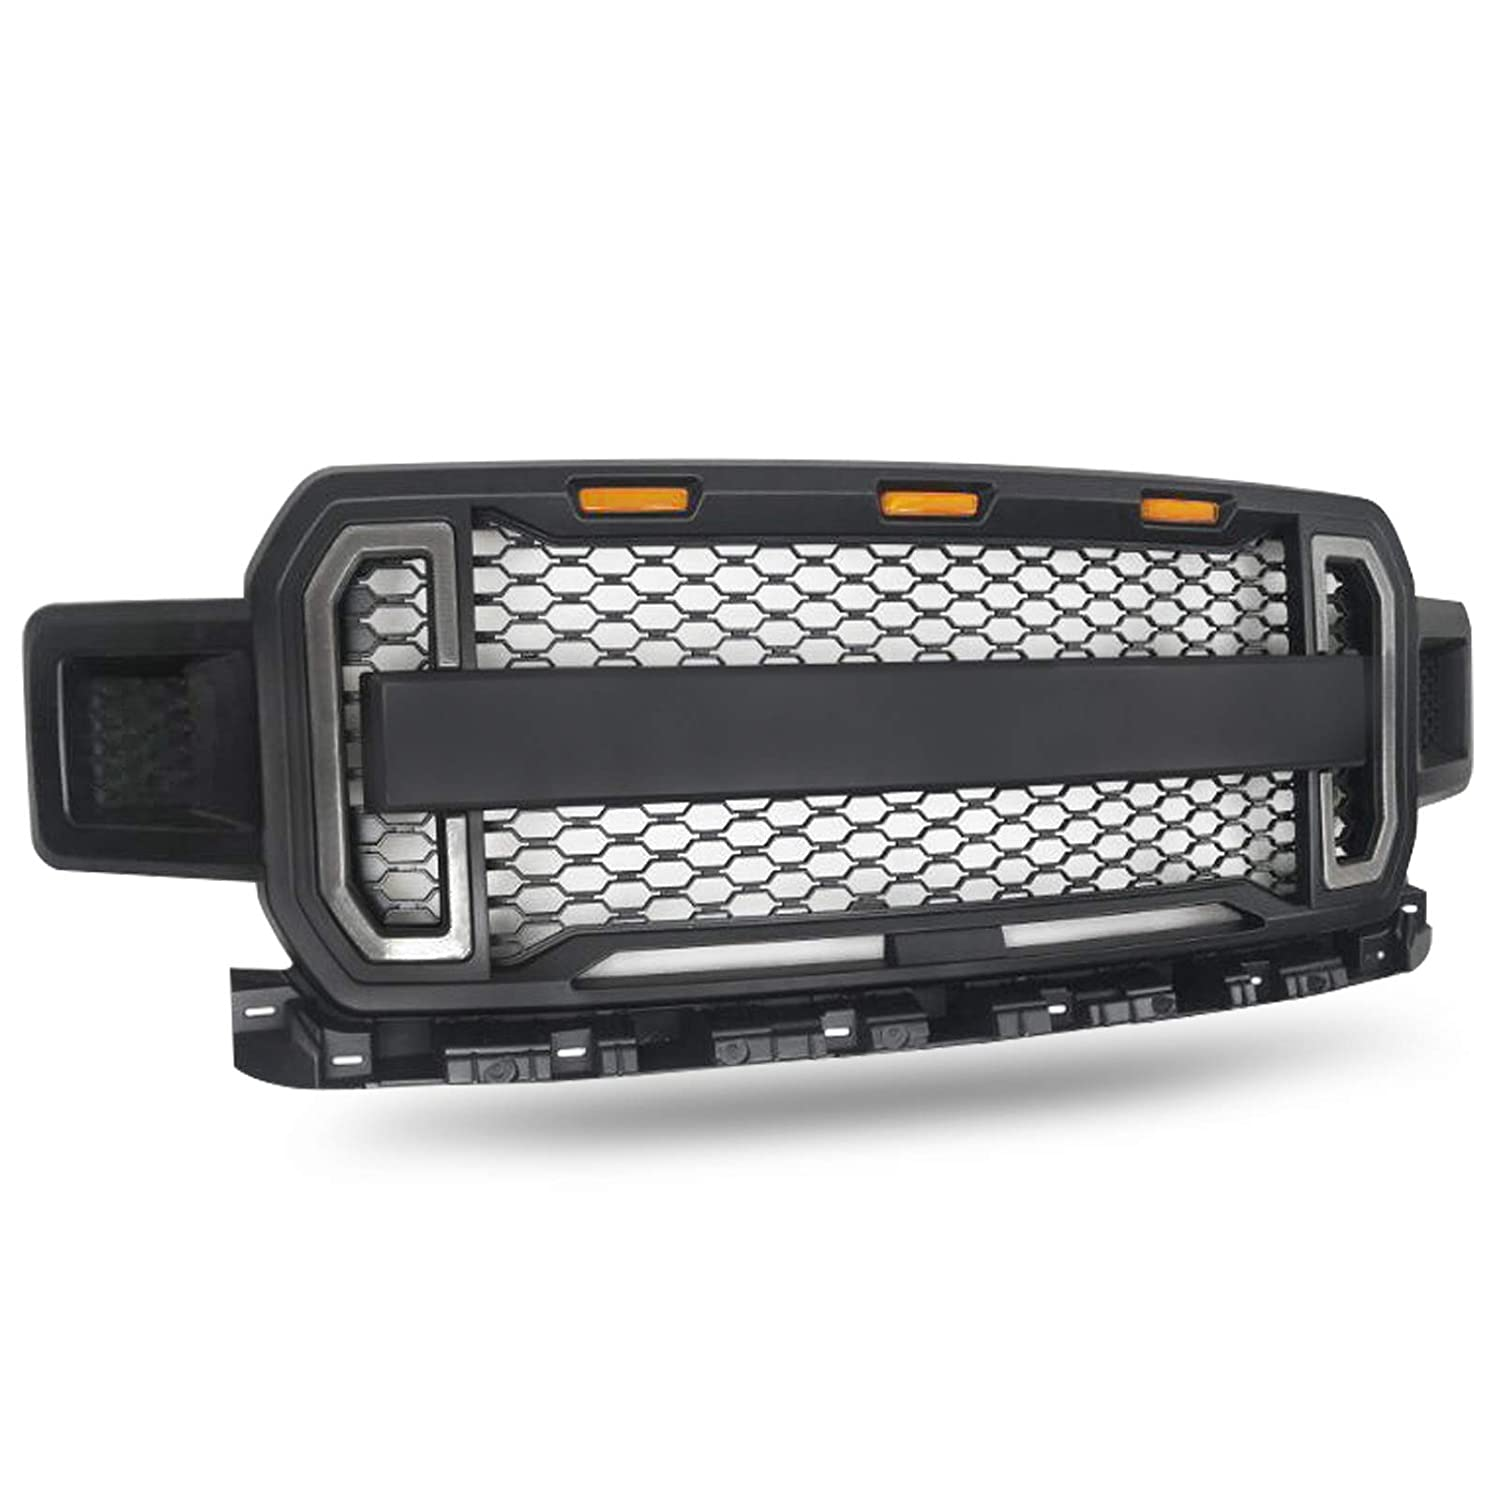 Modifying Front Grille Fits 2018 2019 FORD F150 Style Grill Kits With 3 Amber LED Lights and 2 Side Led Lights